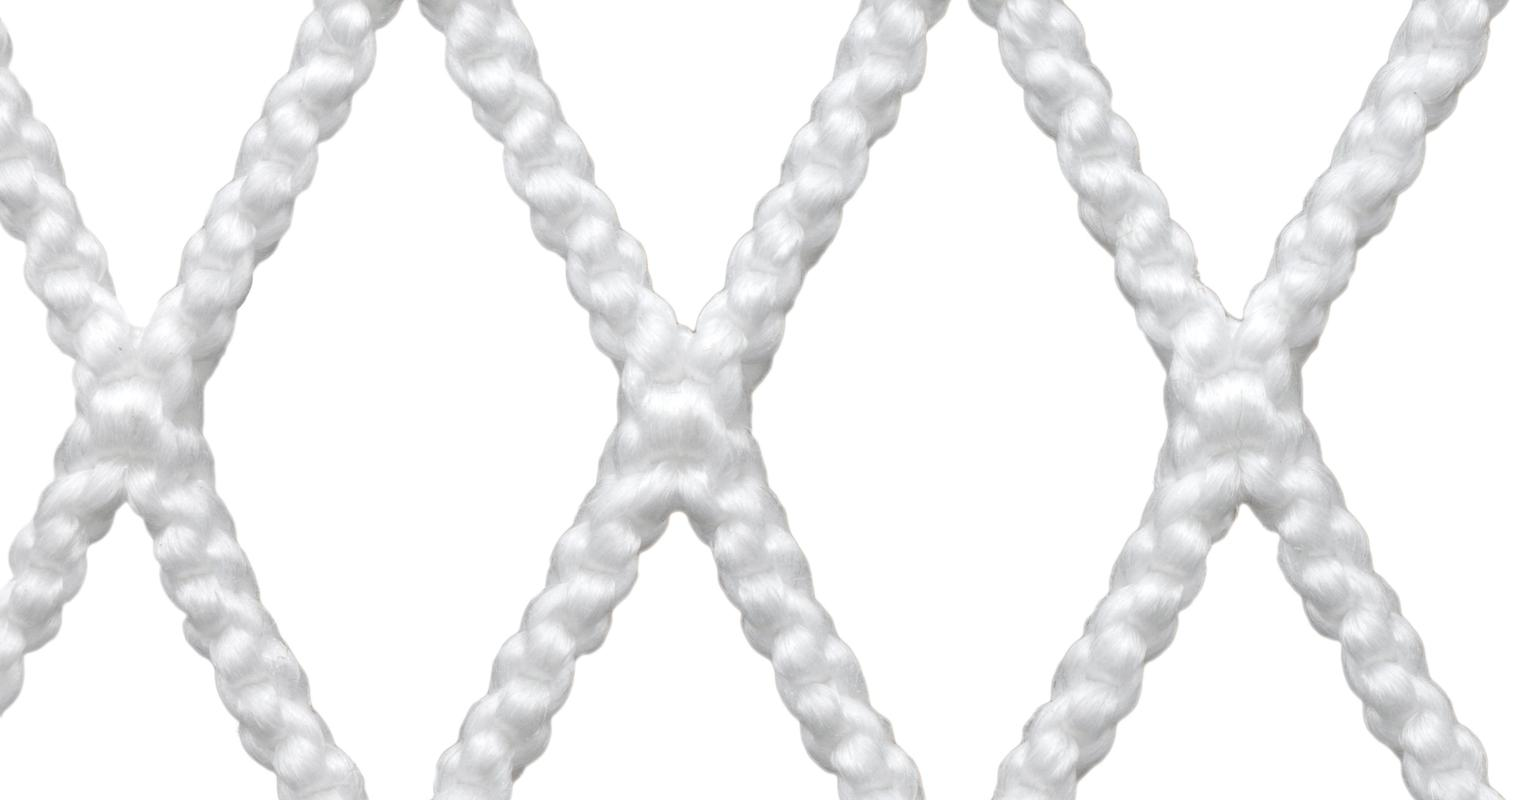 StringKing Grizzly 1 Goalie Lacrosse Mesh Weave Close Up